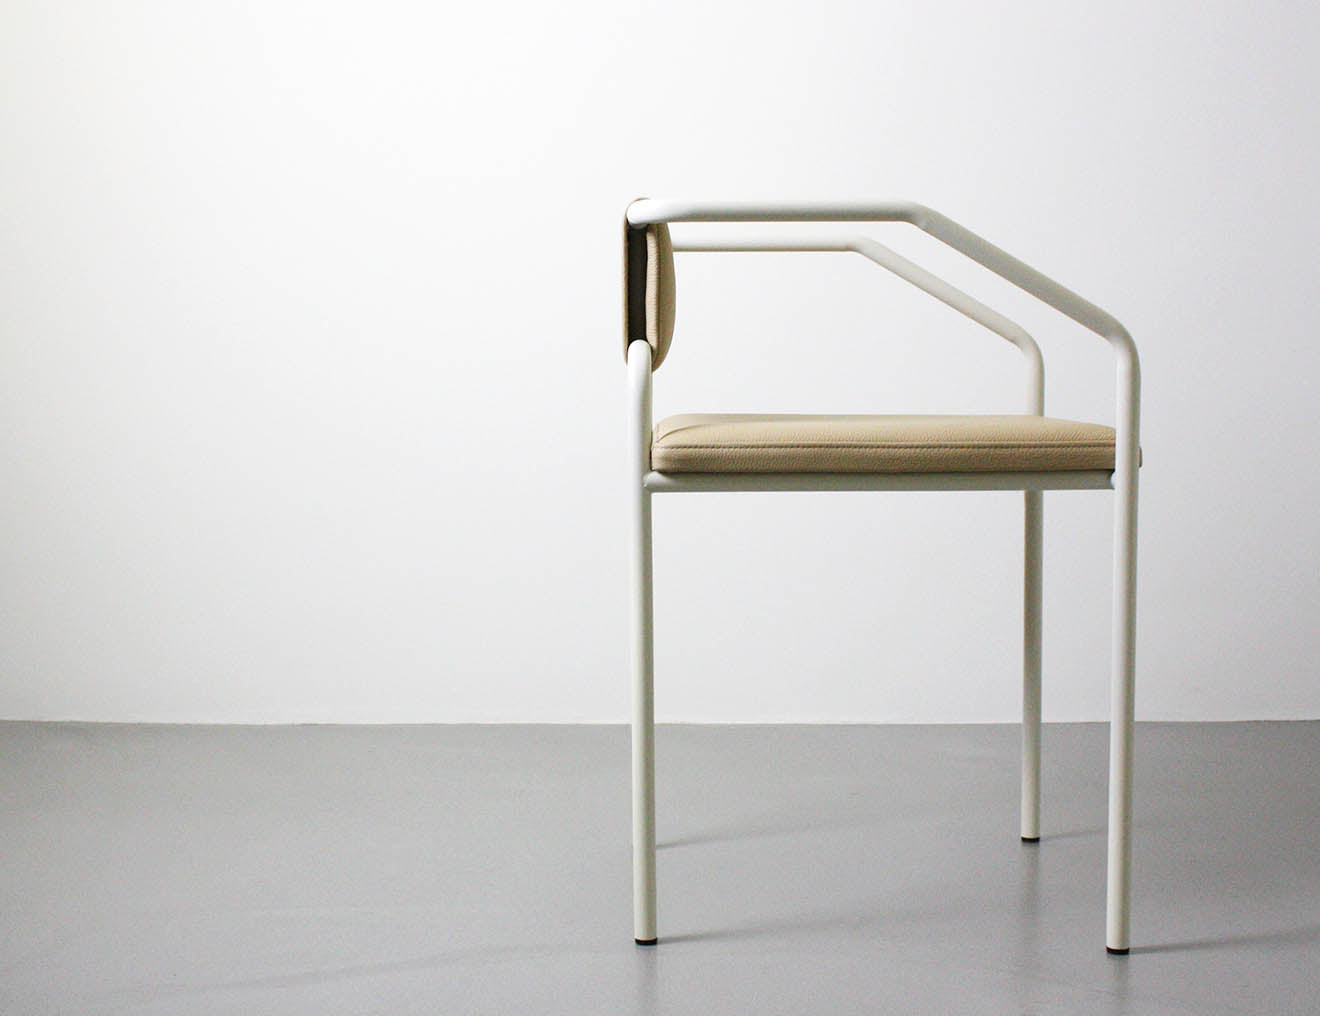 Upholstered metal arm chair, oblique from Dubokk designs